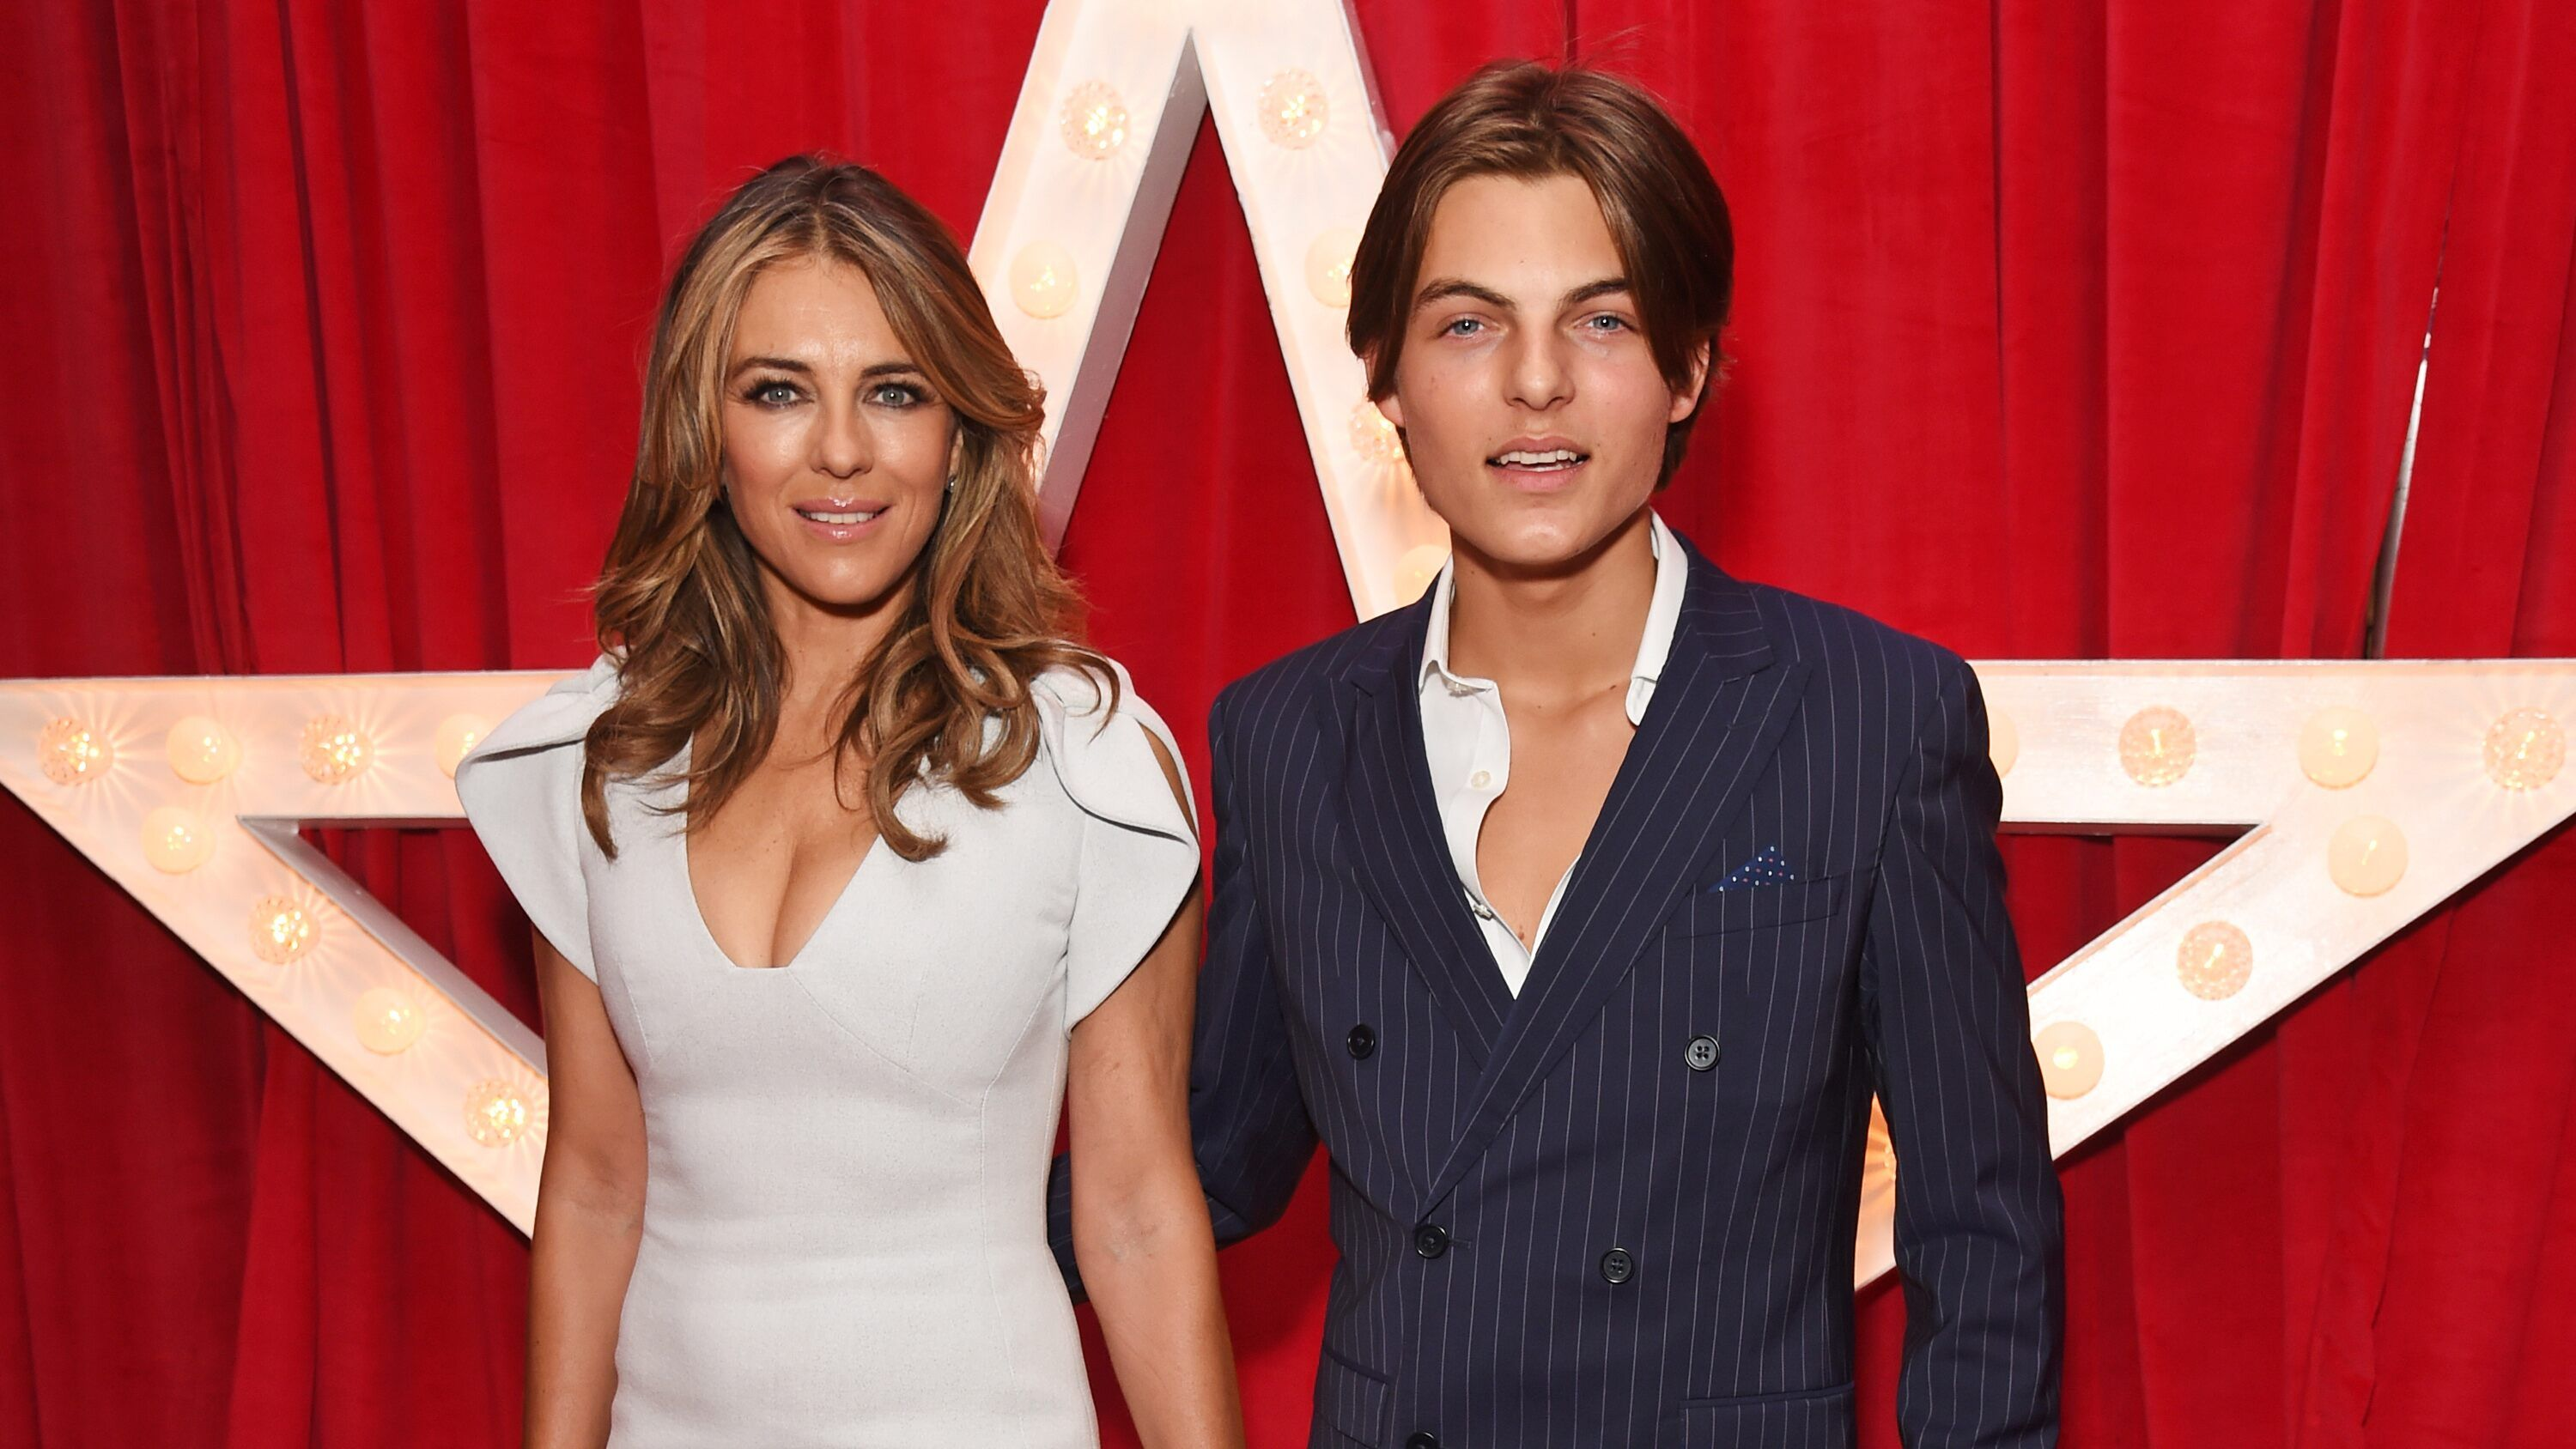 Elizabeth Hurley And Son Damian Look Like Twins As He Copies Her Sultry Pose Elizabeth Hurley Damian Hurley Hurley